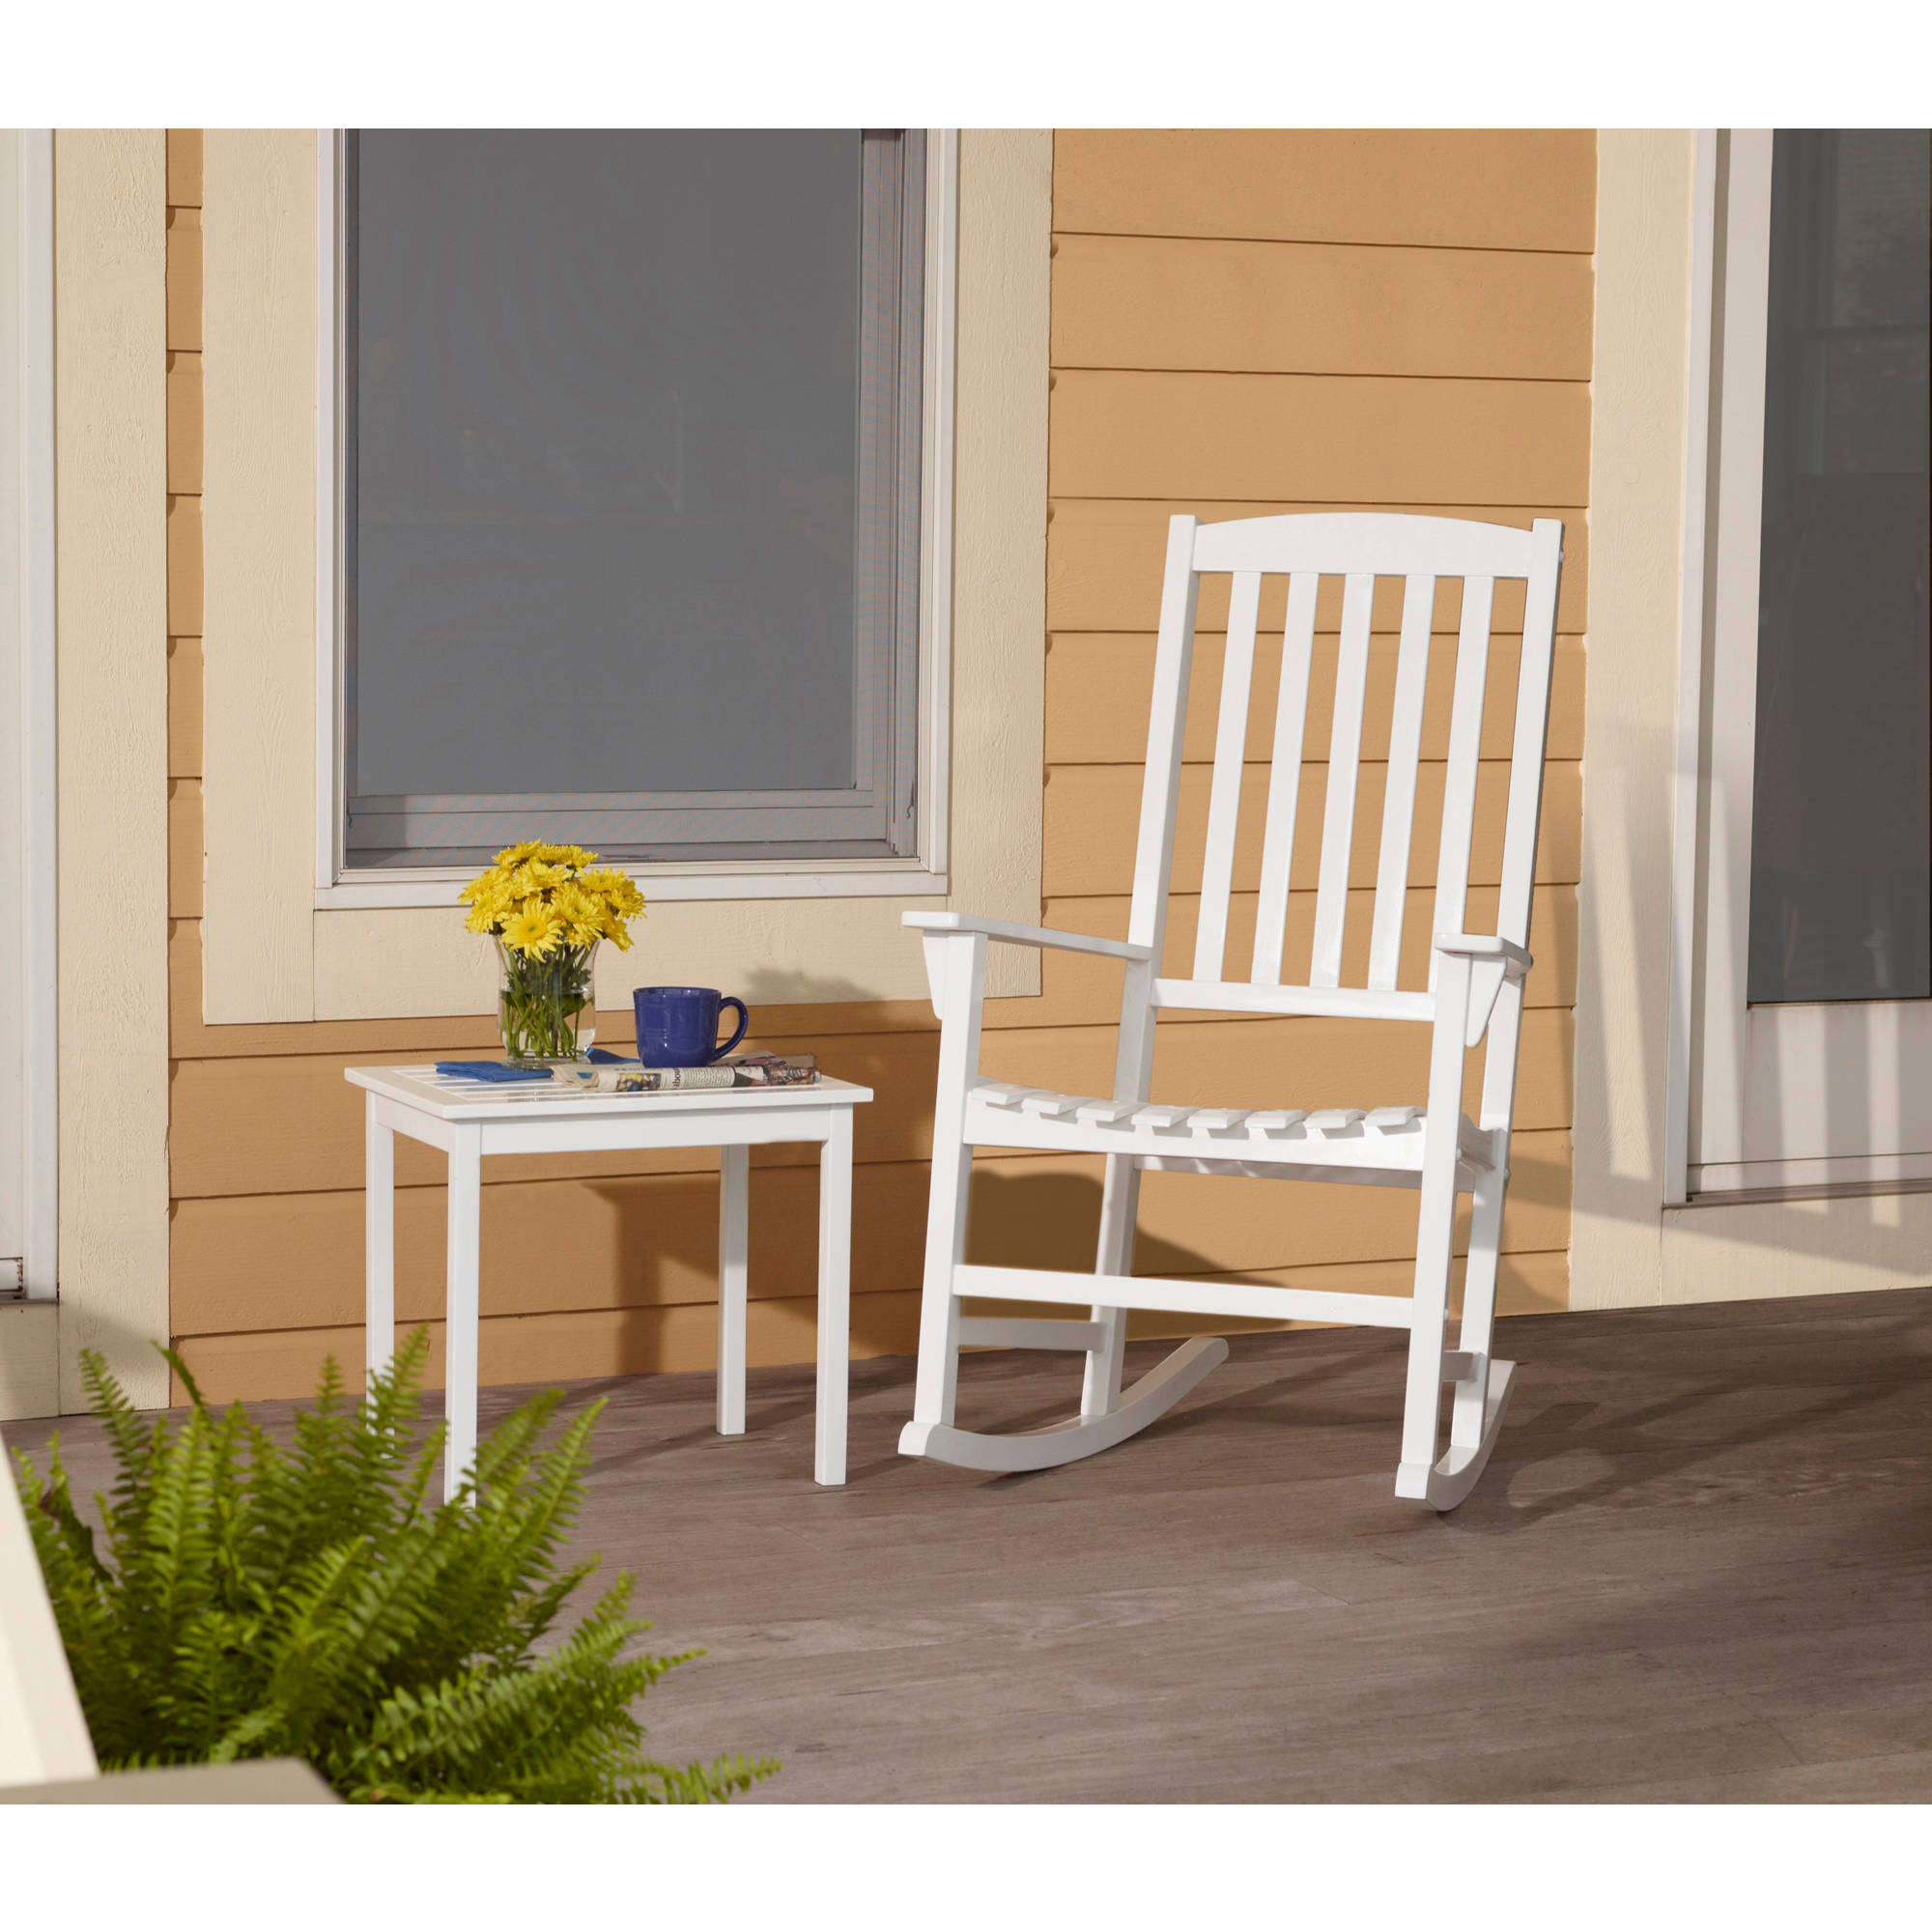 Outdoor furniture all chairs rocking chairs jefferson outdoor rocking - Outdoor Furniture All Chairs Rocking Chairs Jefferson Outdoor Rocking 24